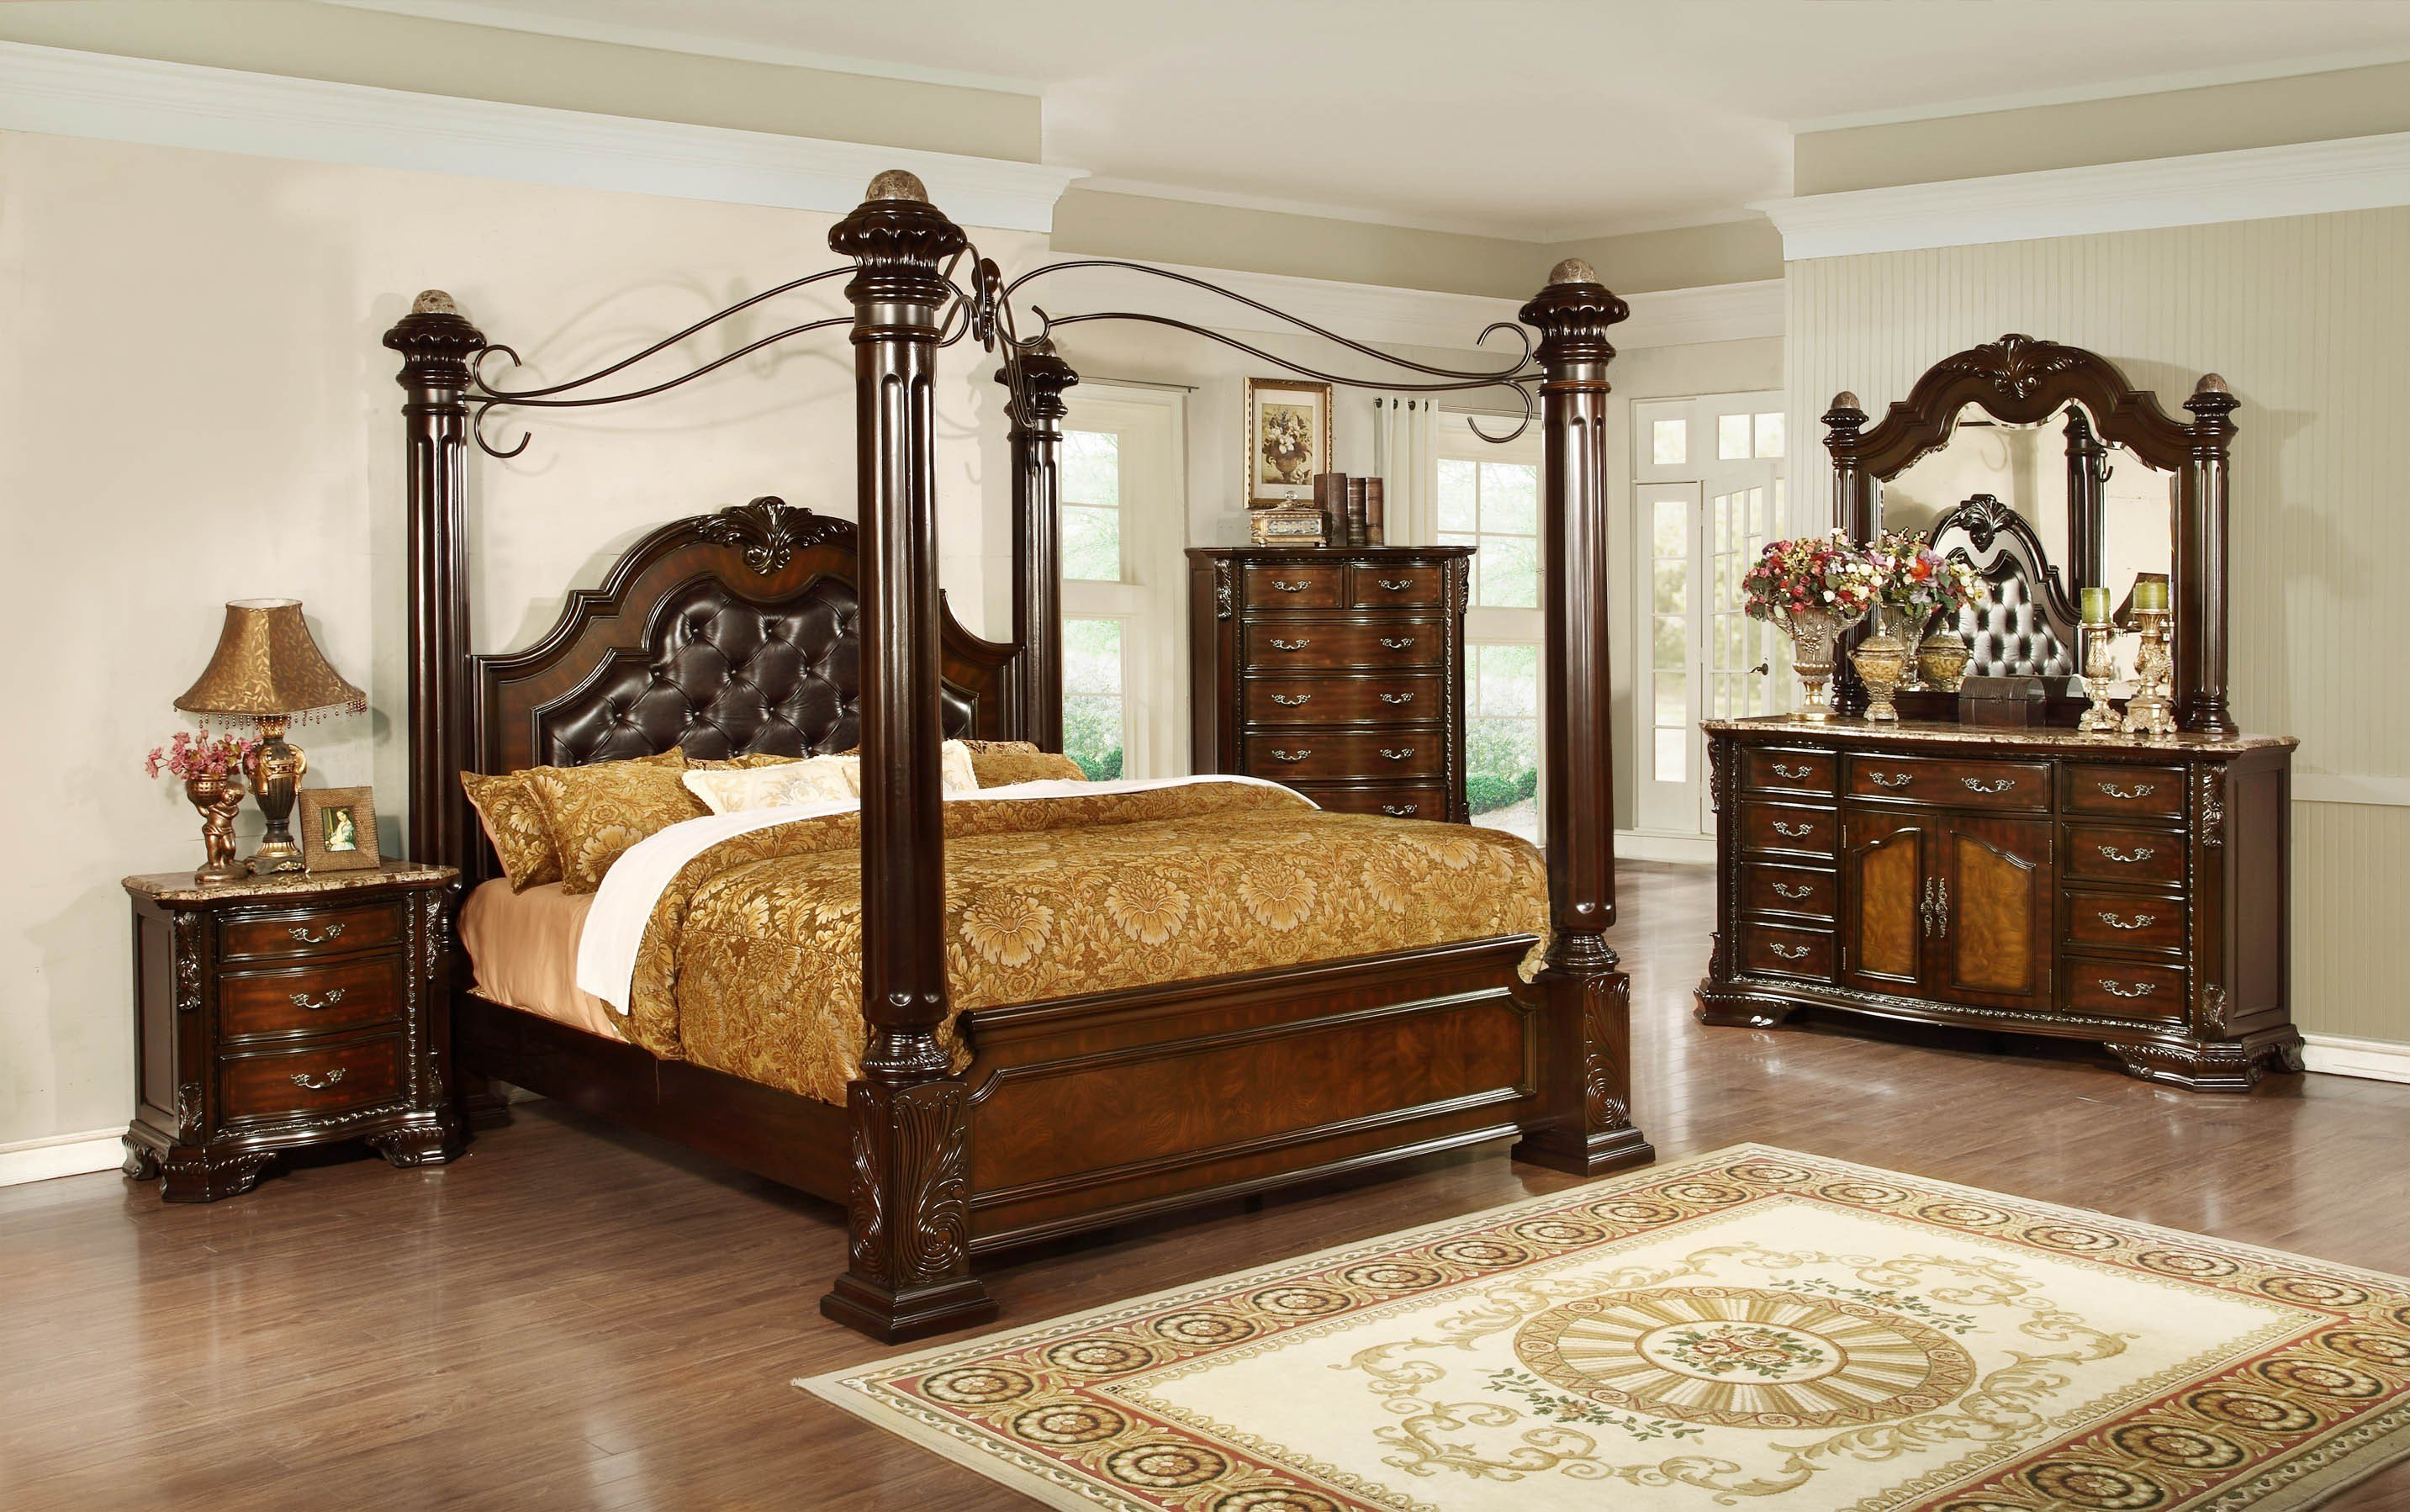 Best 6Pc King Bedroom Set Bel Furniture Houston San Antonio With Pictures